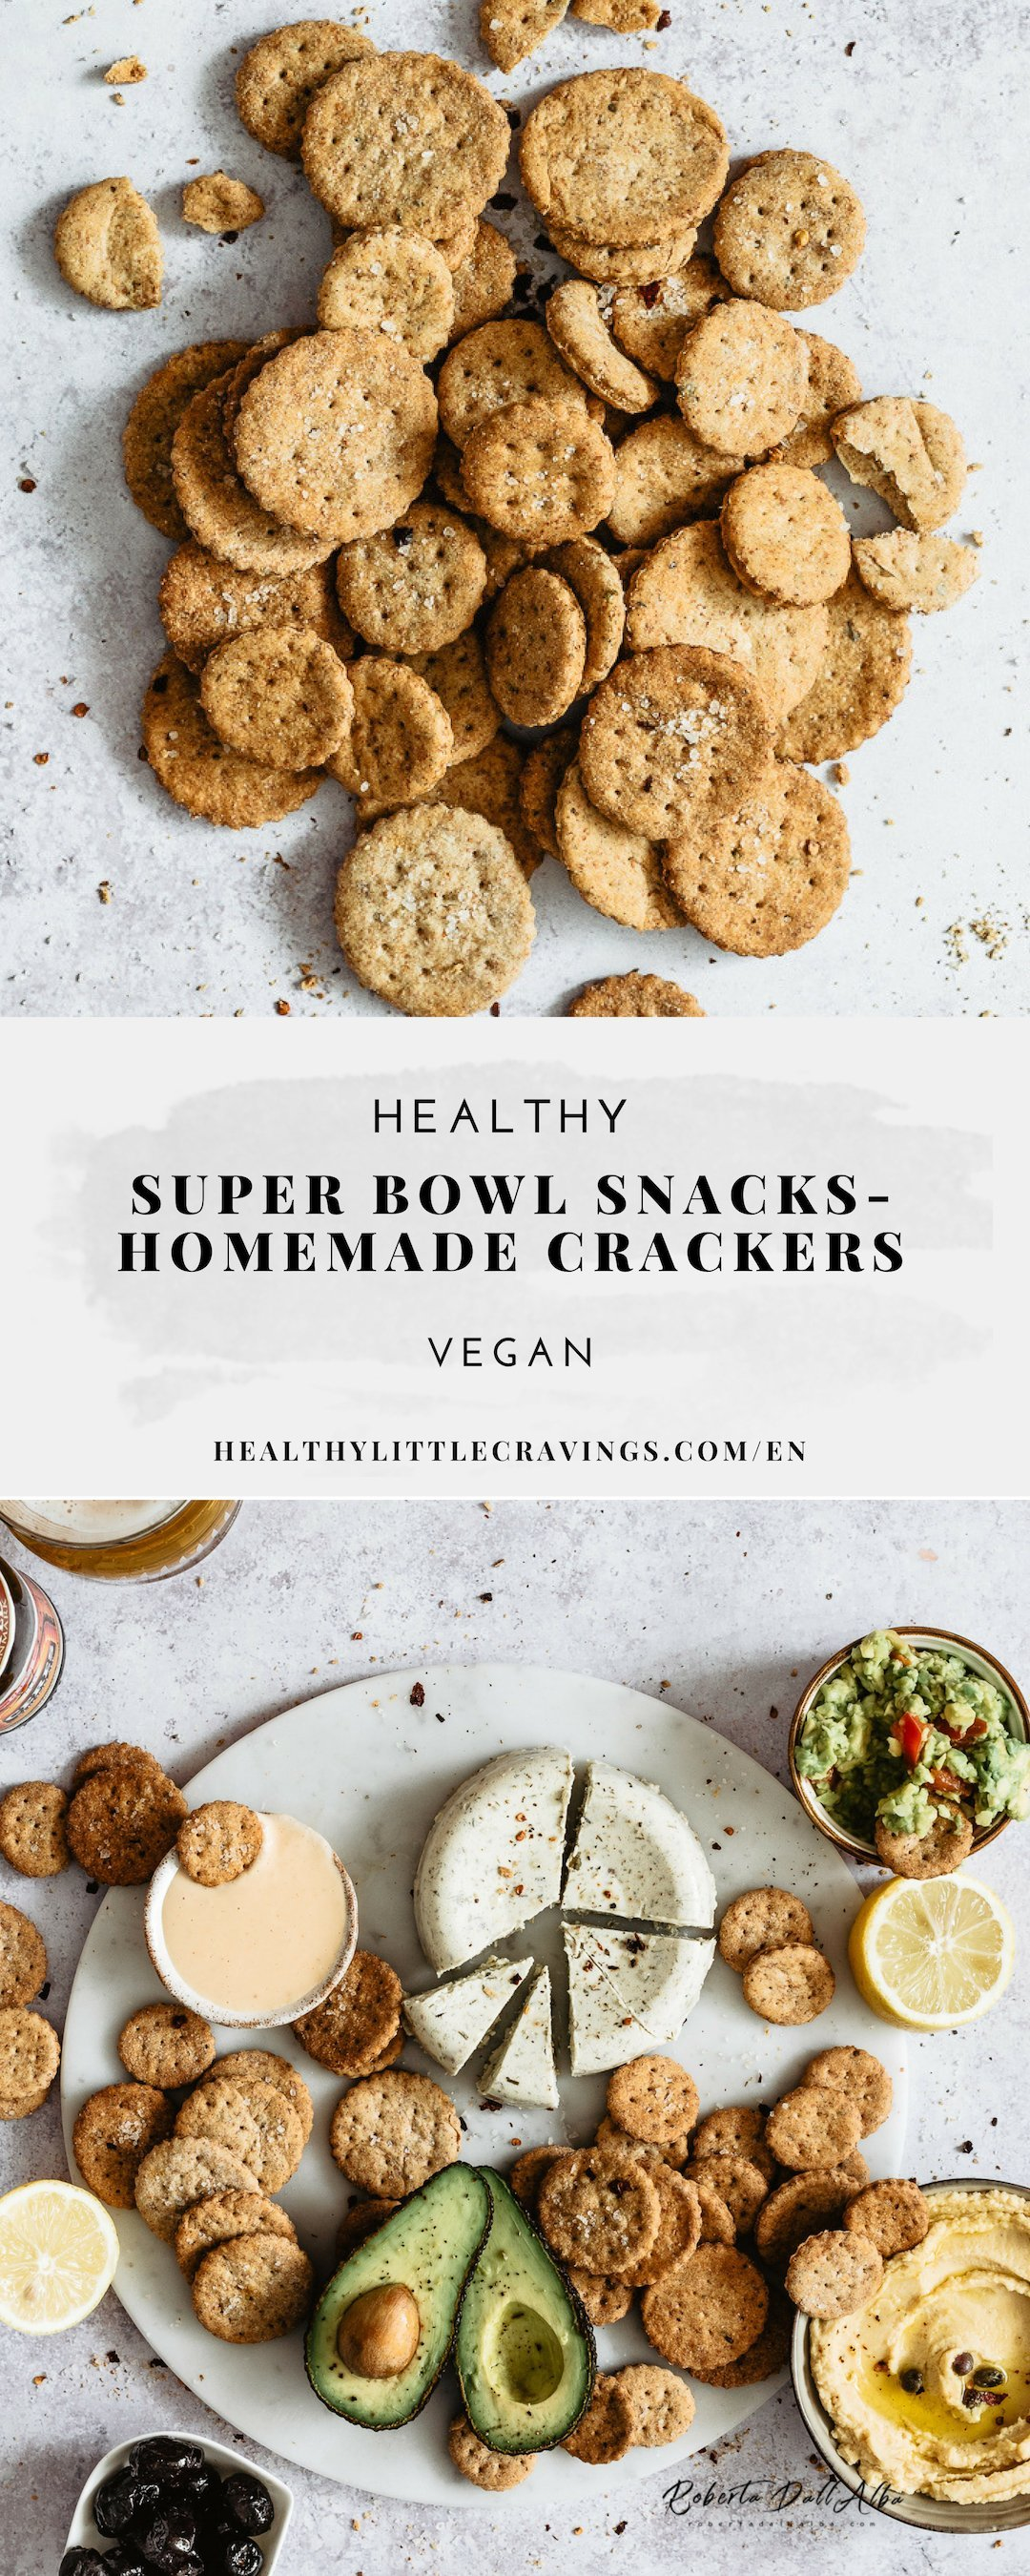 Pin this healthy super bowl snacks ideas!